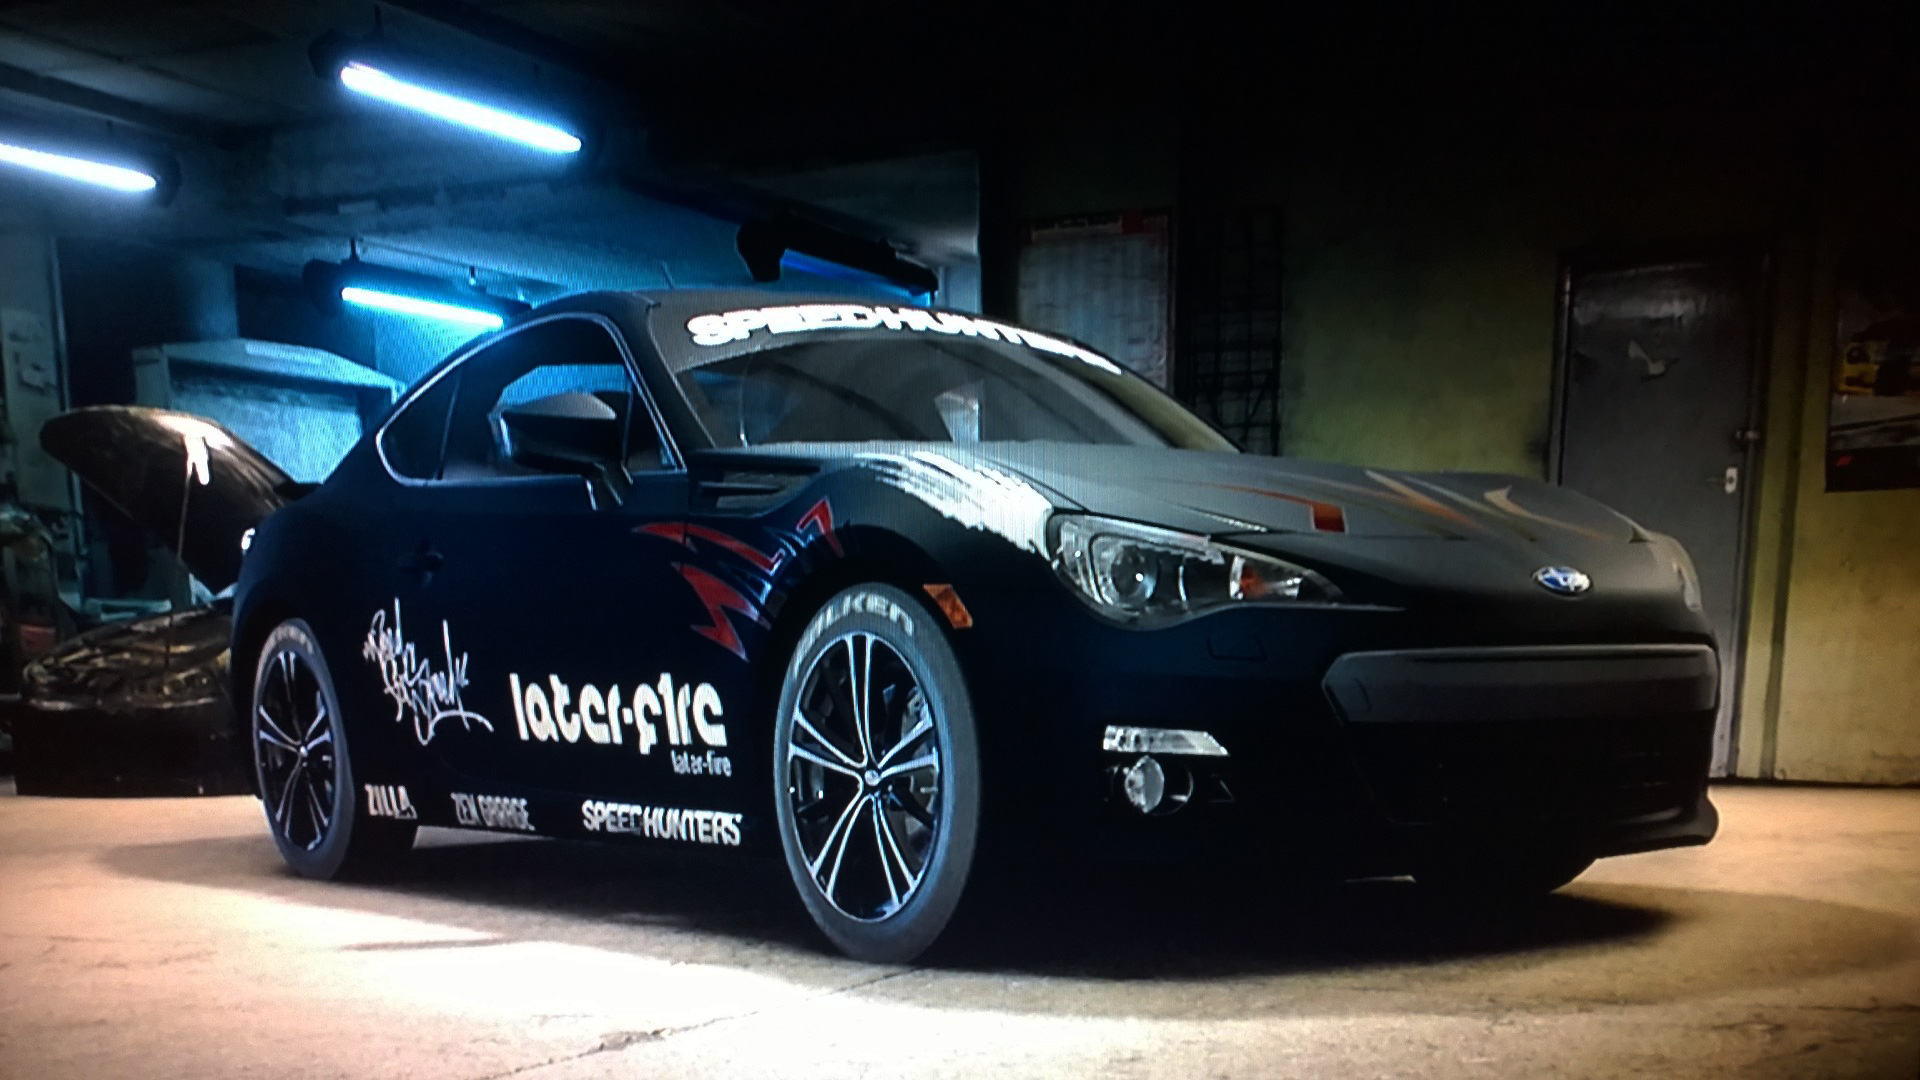 Need for Speed - screen photo - BRZ - custom by nomadelj - NFS car - avant / front